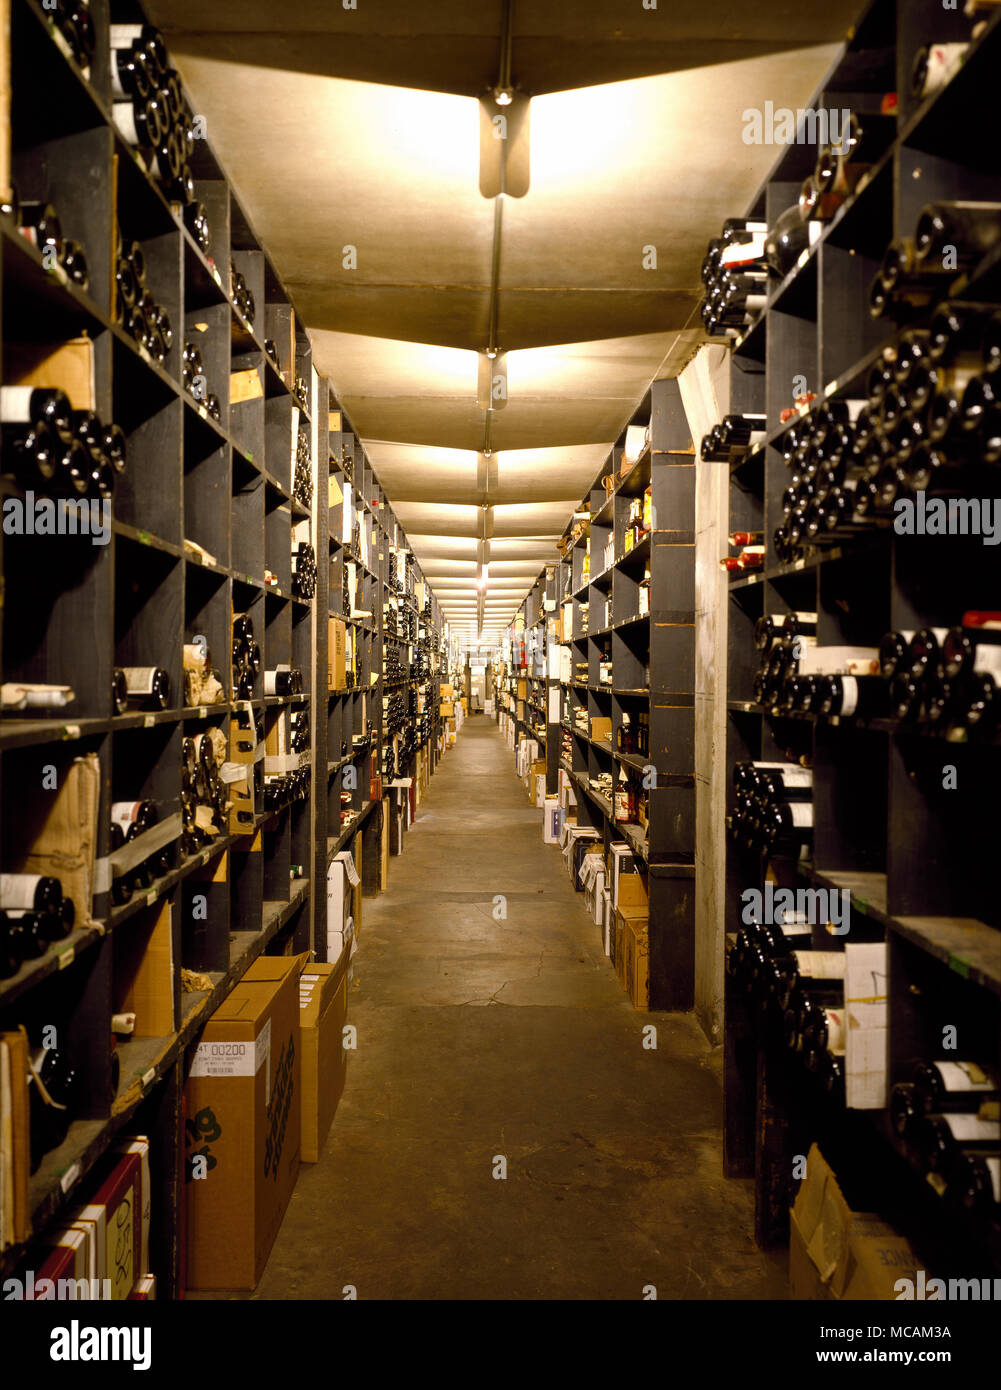 Wine cellar at venerable Antoine's Restaurant Stock Photo